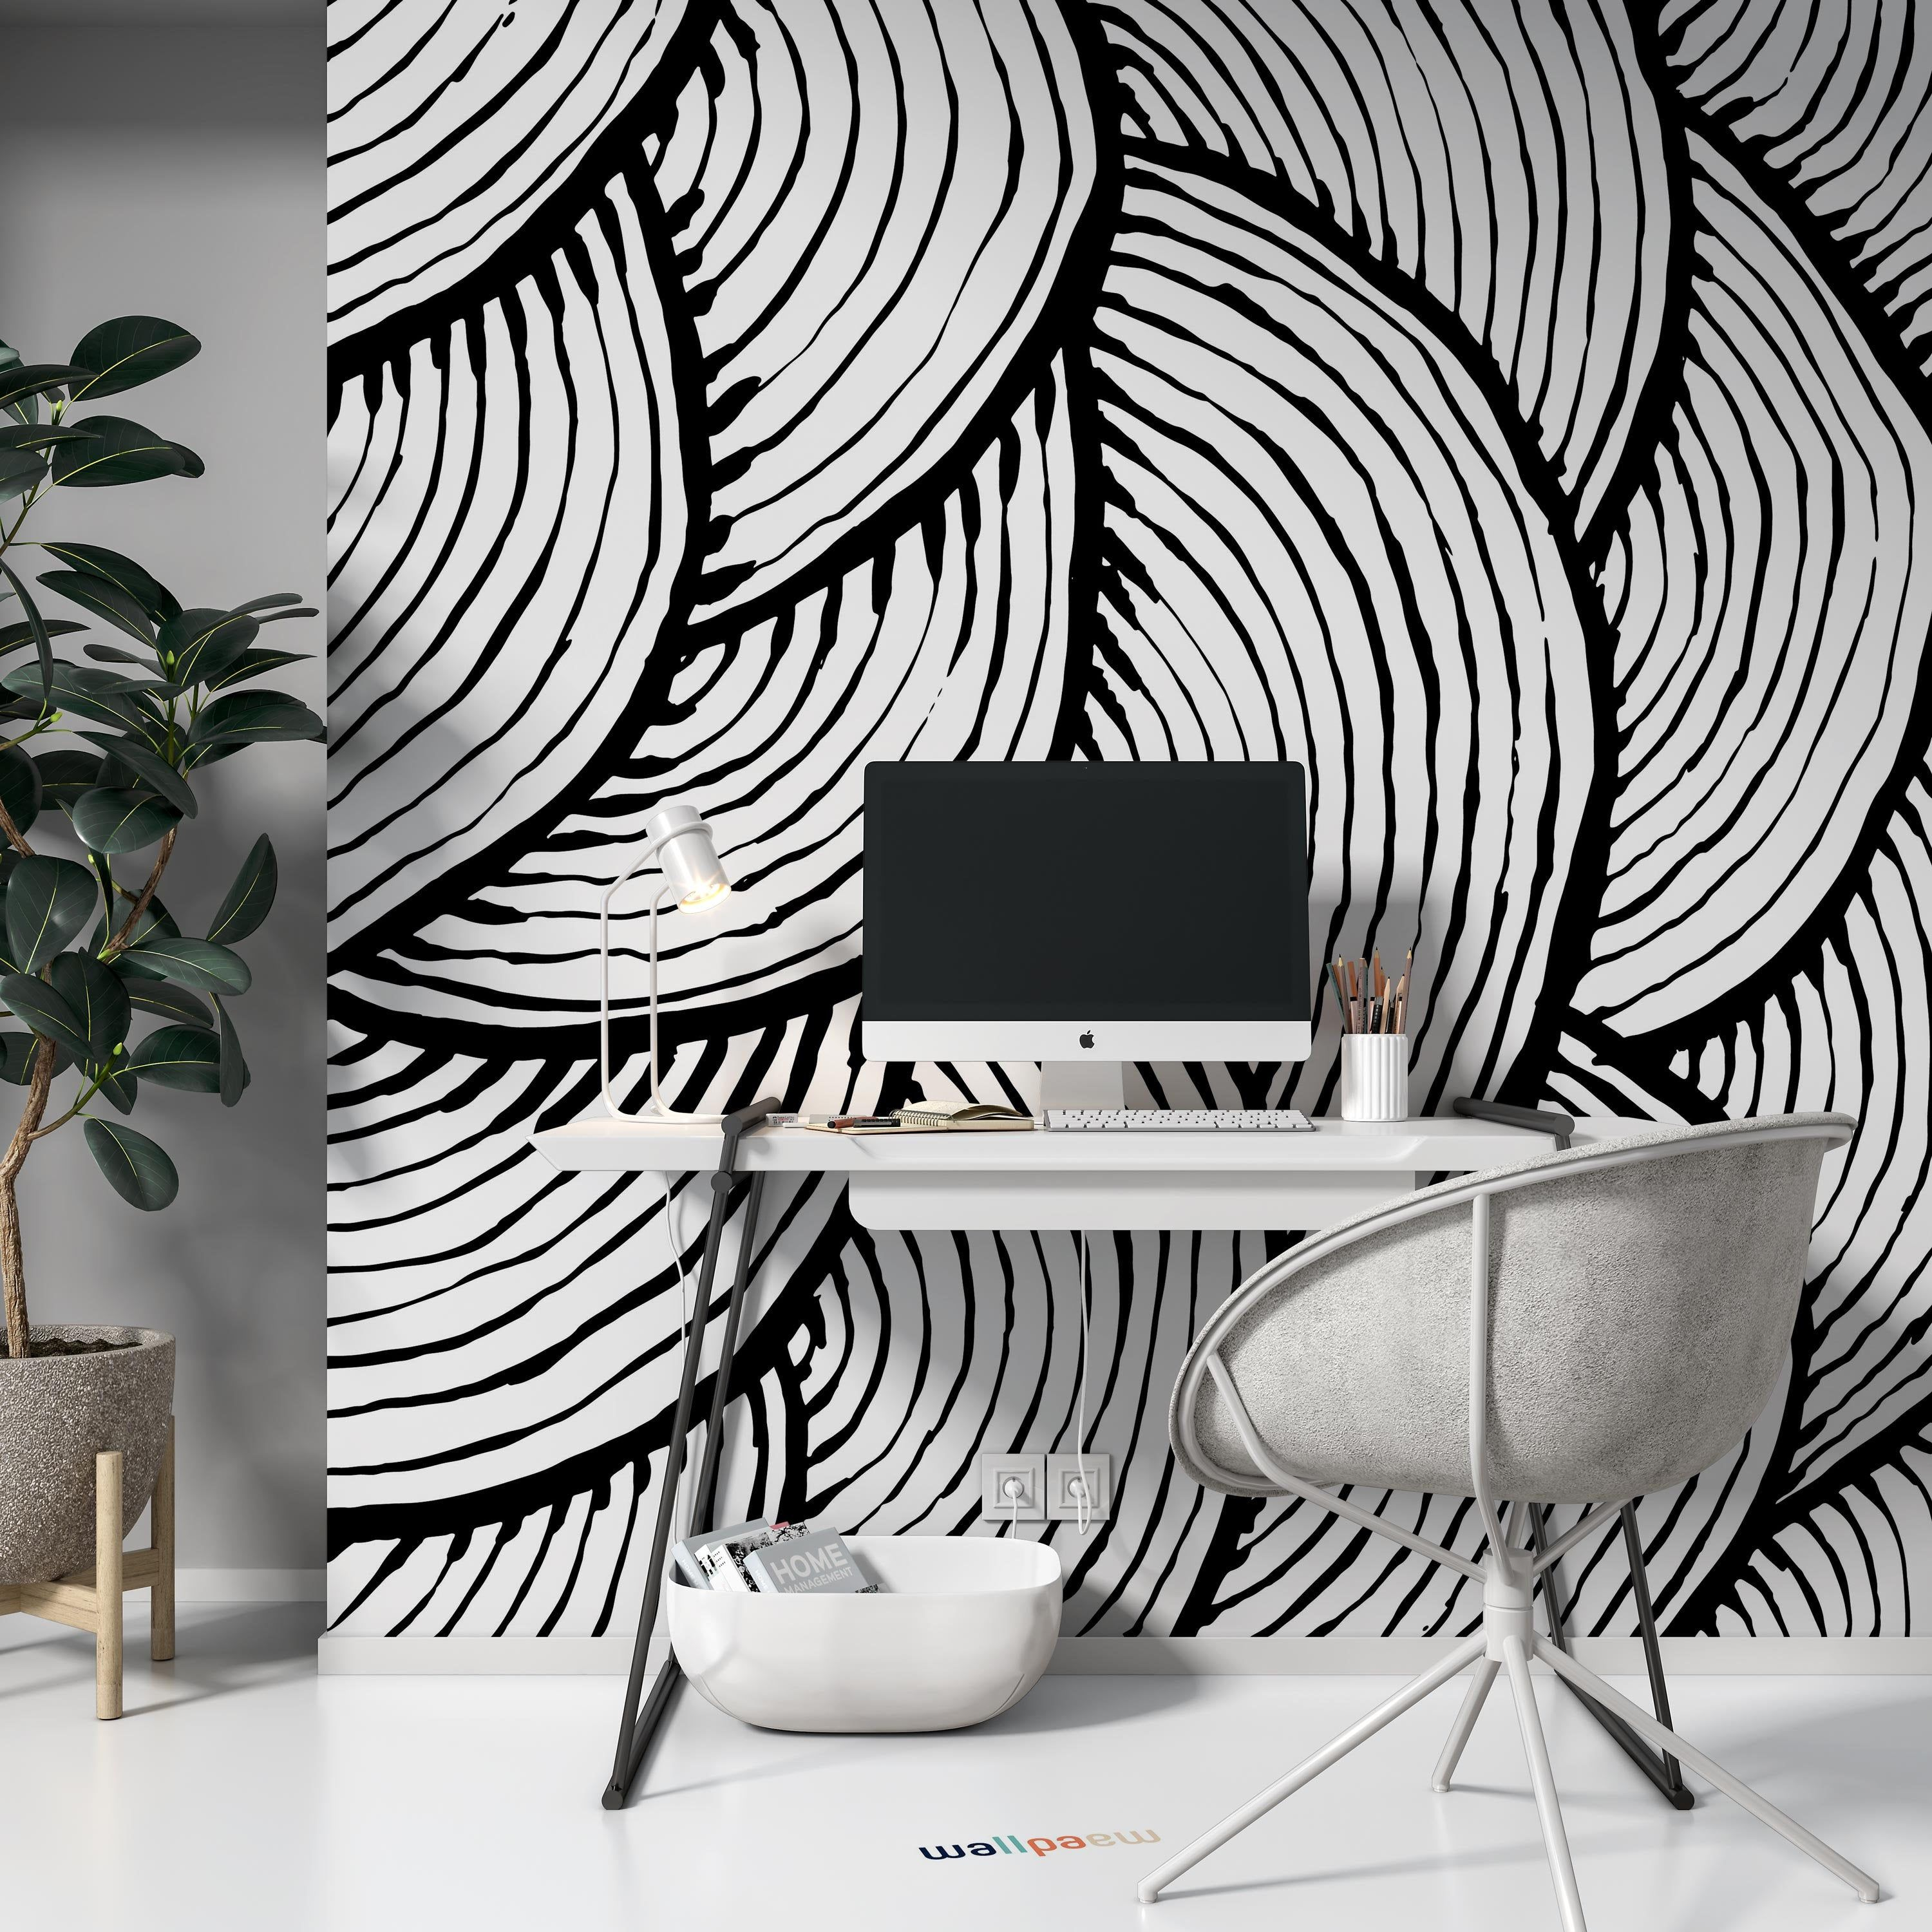 Brush Stroke Pattern Black And White Watercolor Abstract Etsy In 2021 Black Accent Wall Living Room Accent Walls In Living Room Black Wall Decor